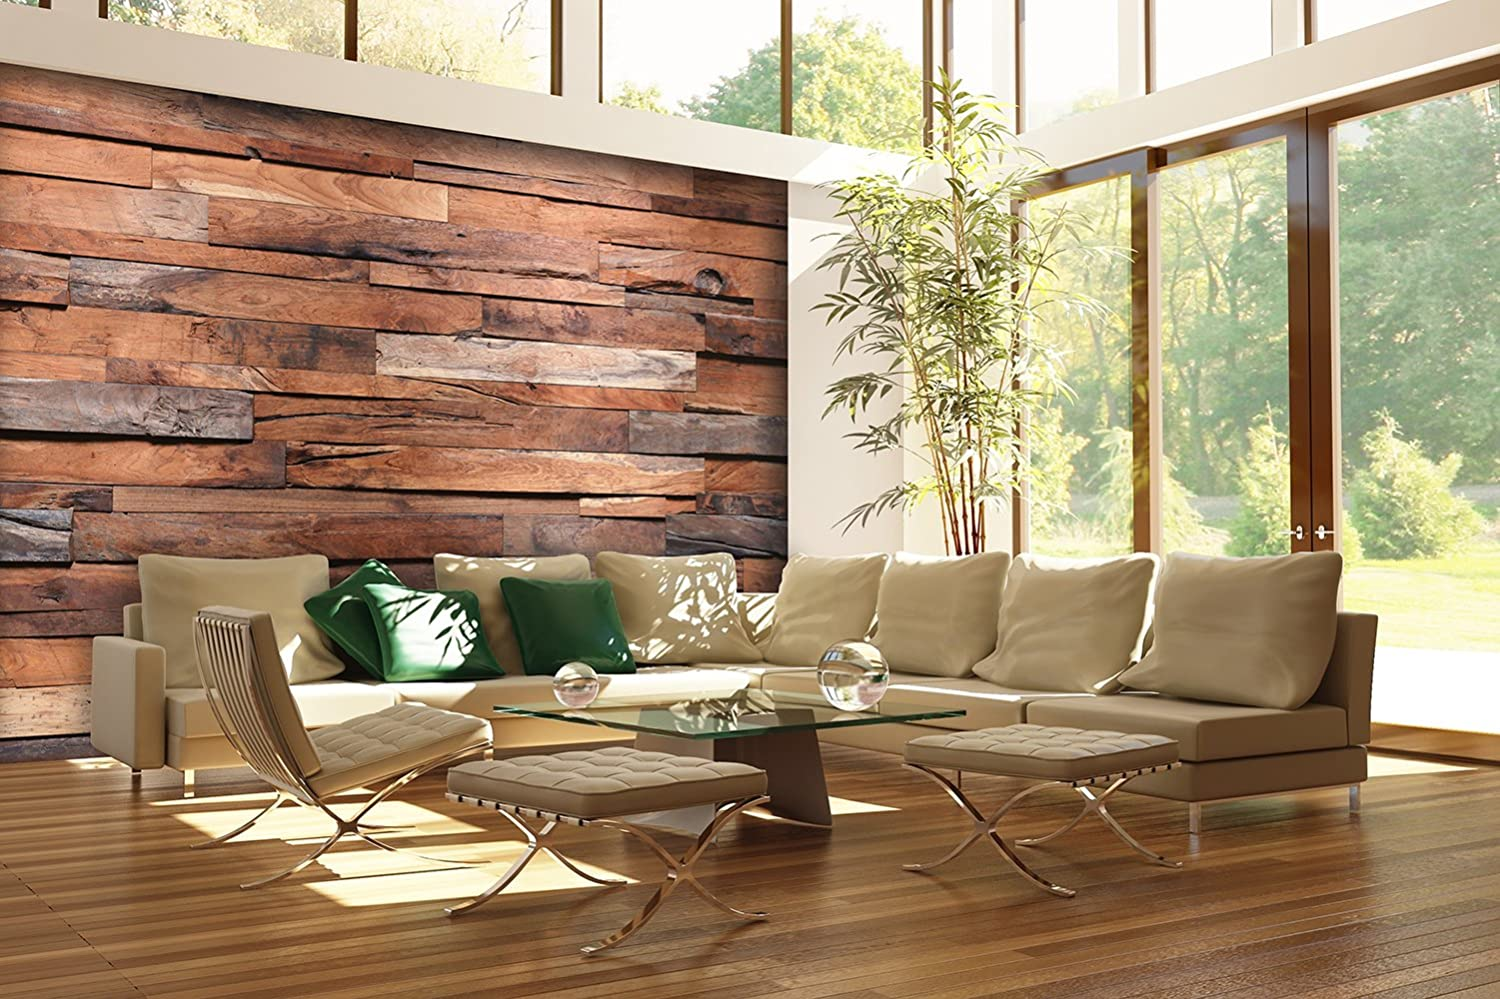 salvaged whitewash reclaimed clock wood ideas barn walls interior paneling decor wall design old of planks